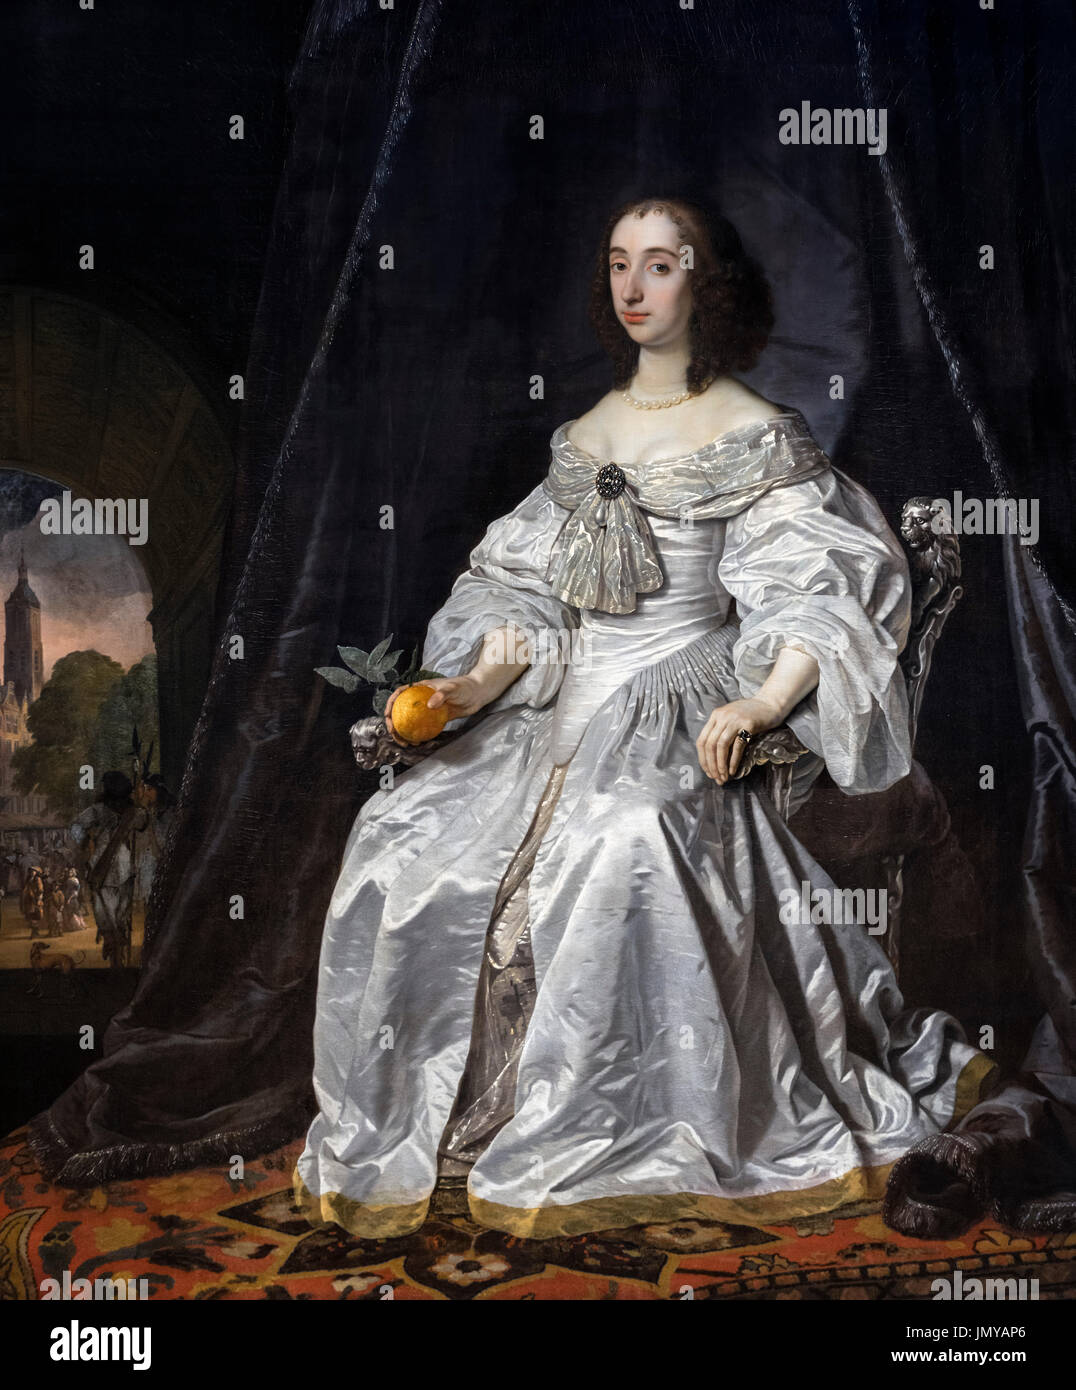 Mary Henrietta Stuart (1631-1660), widow of William II, Prince of Orange and mother of William III, King of England. Painting by Bartholomeus van der Helst, oil on canvas, 1652. - Stock Image